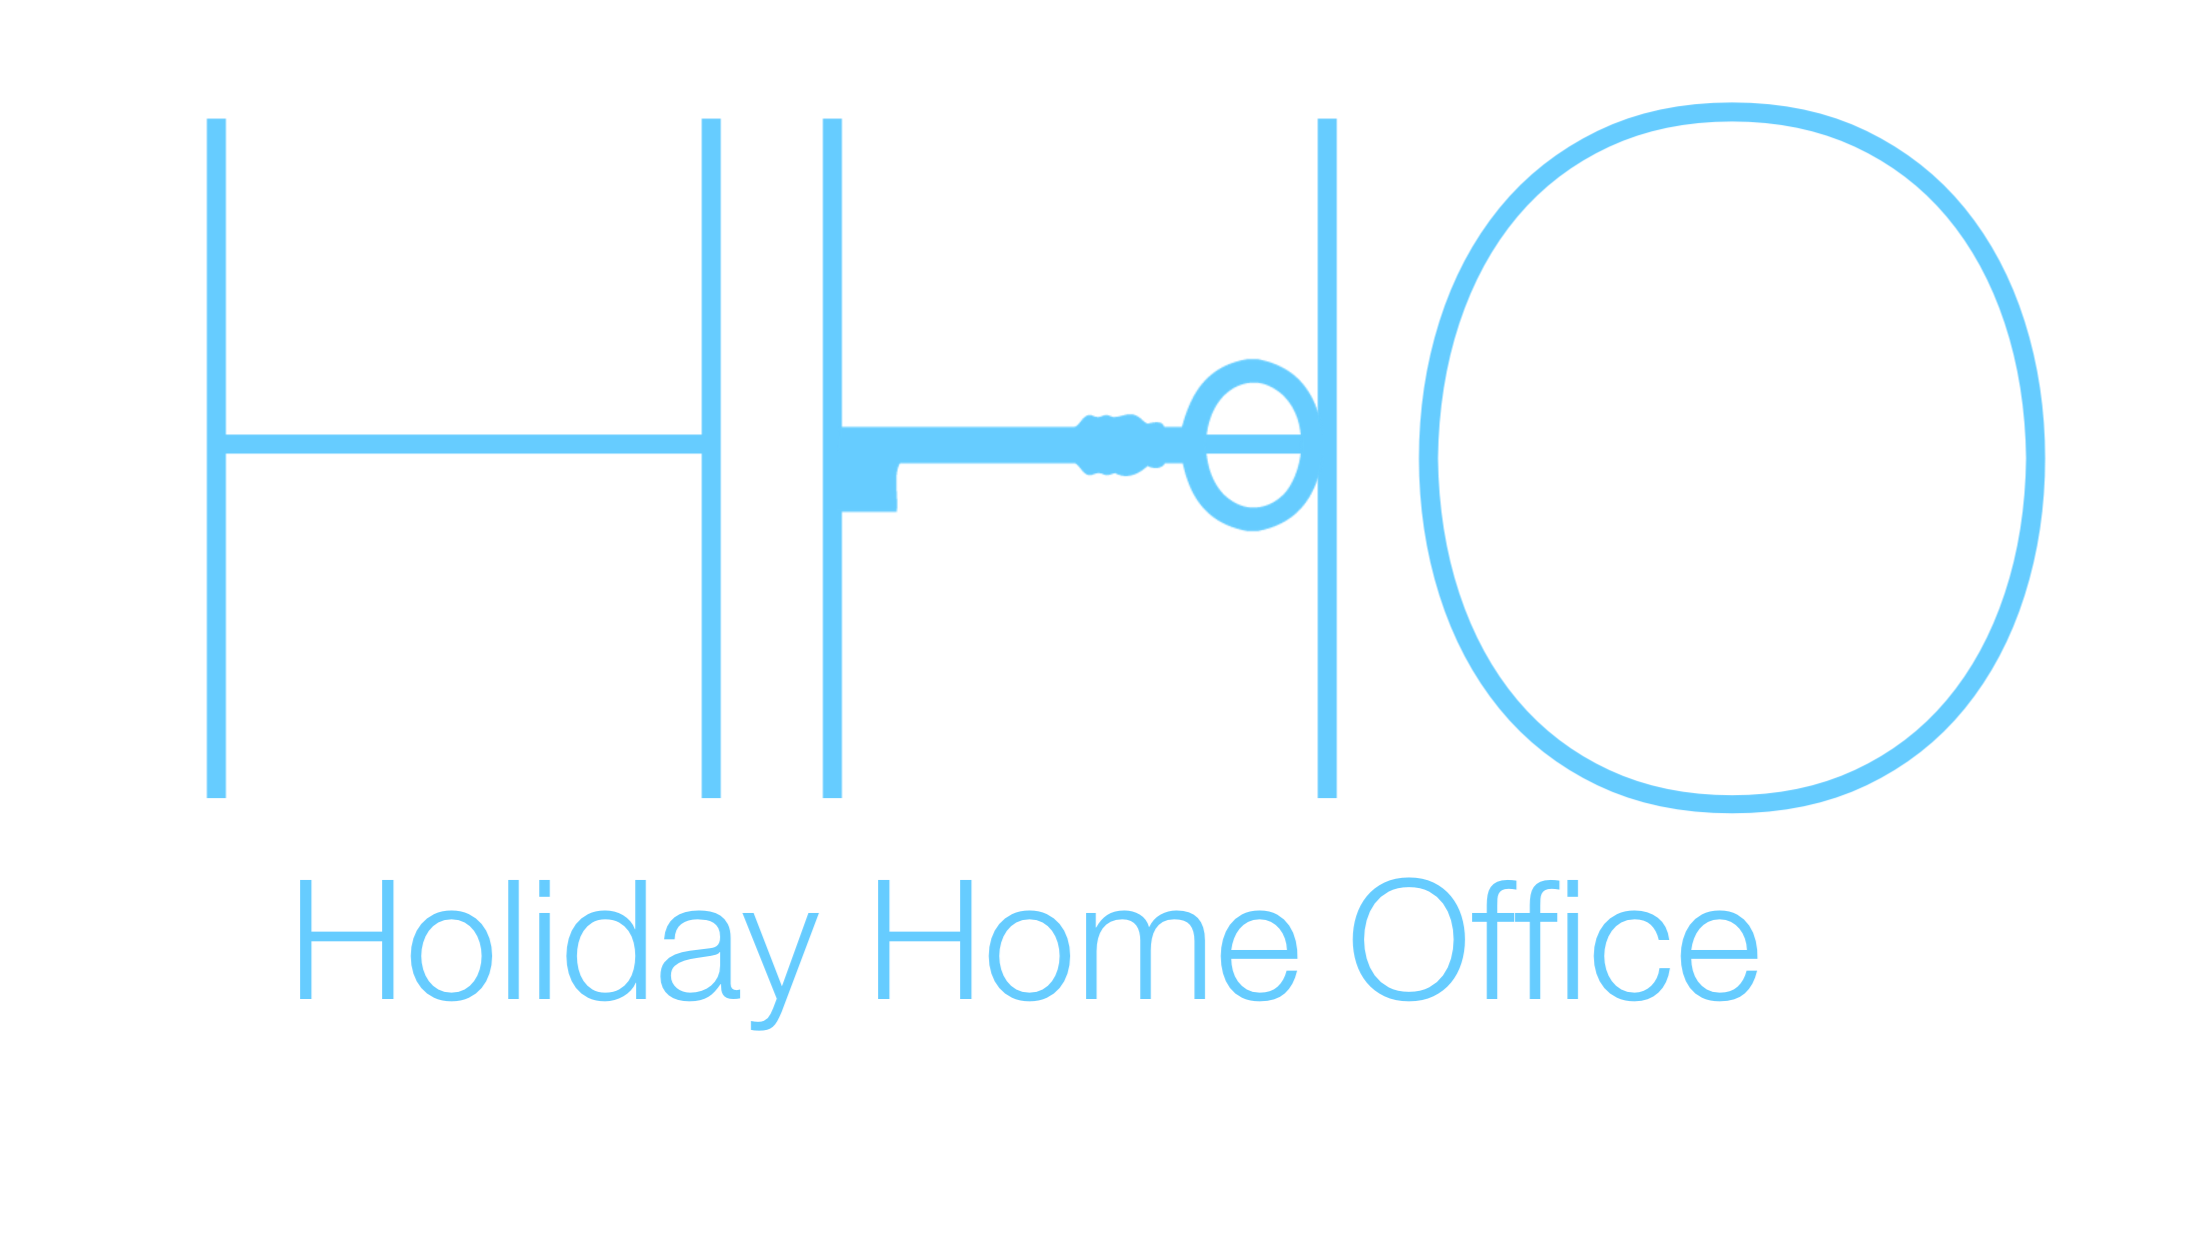 Logo for Holiday Home Office, pale blue with Key